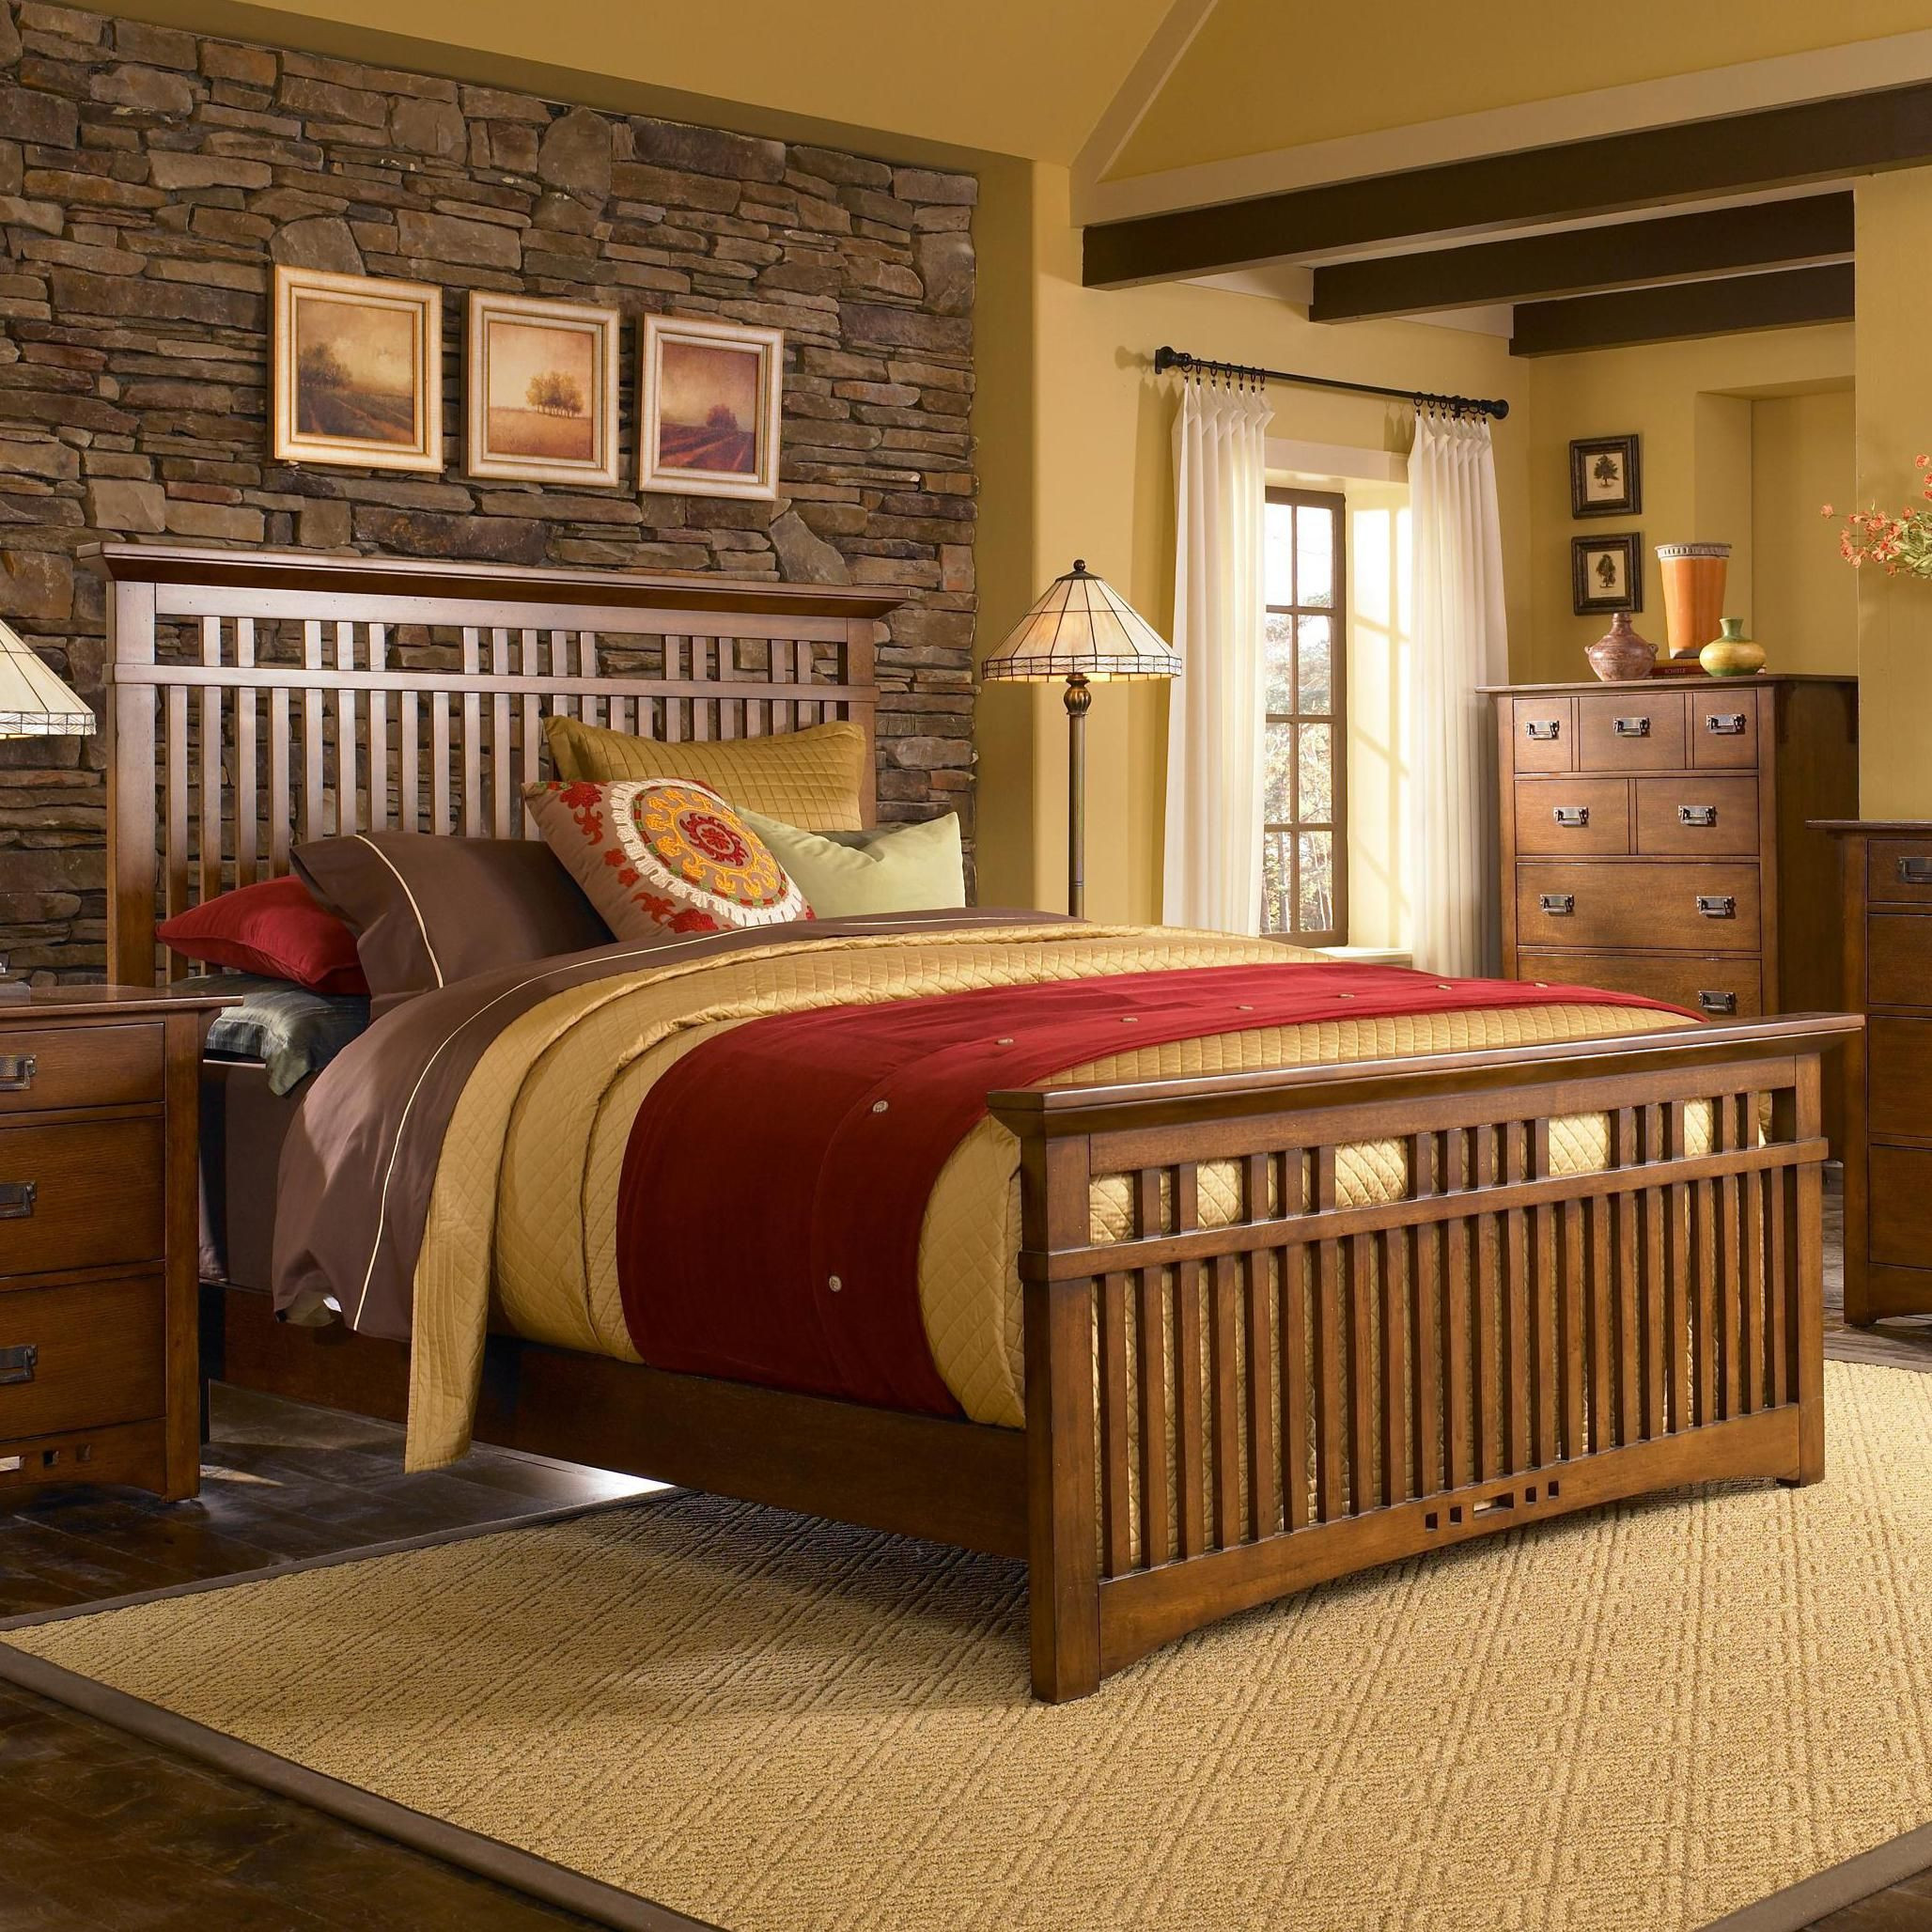 Best ideas about Broyhill Bedroom Set . Save or Pin Mission bedroom set by Broyhill mission Now.